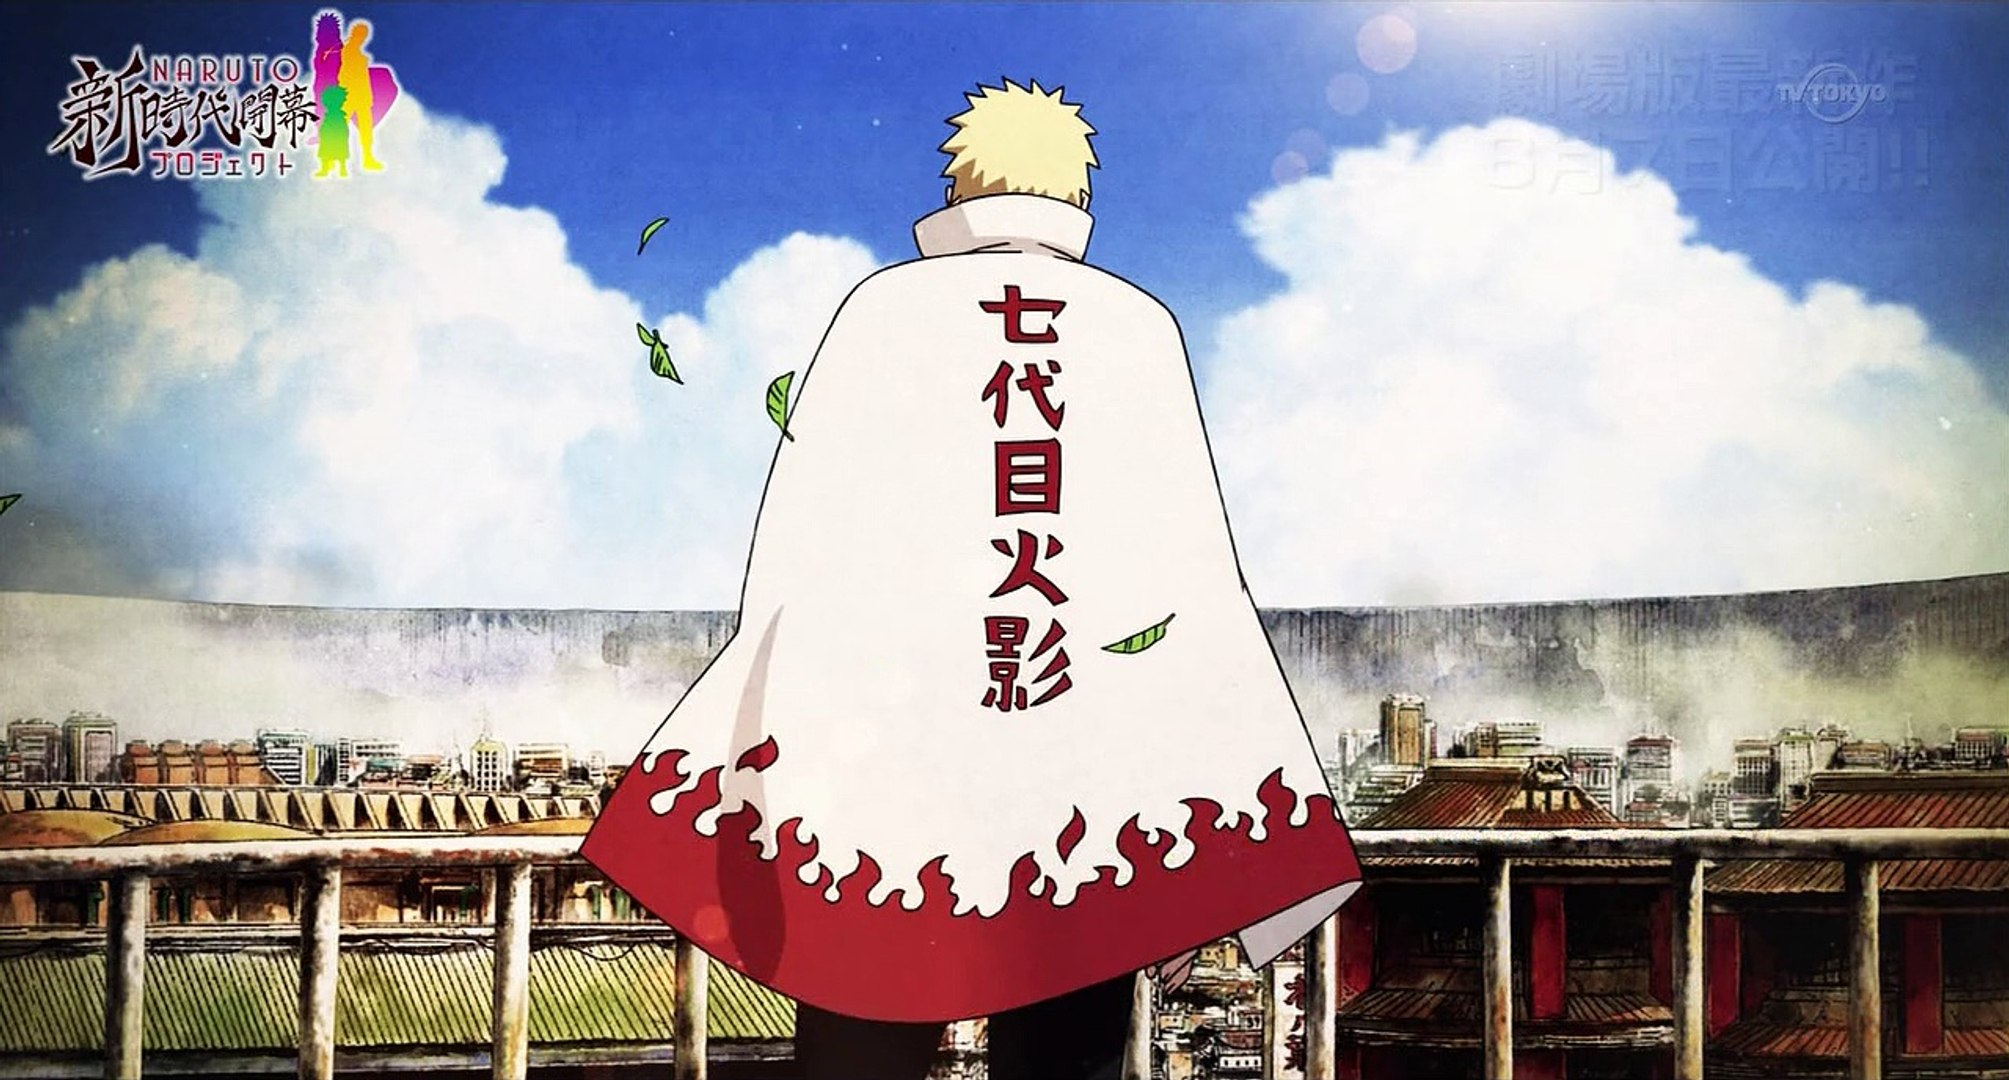 Boruto - Naruto the Movie Teaser Short Version